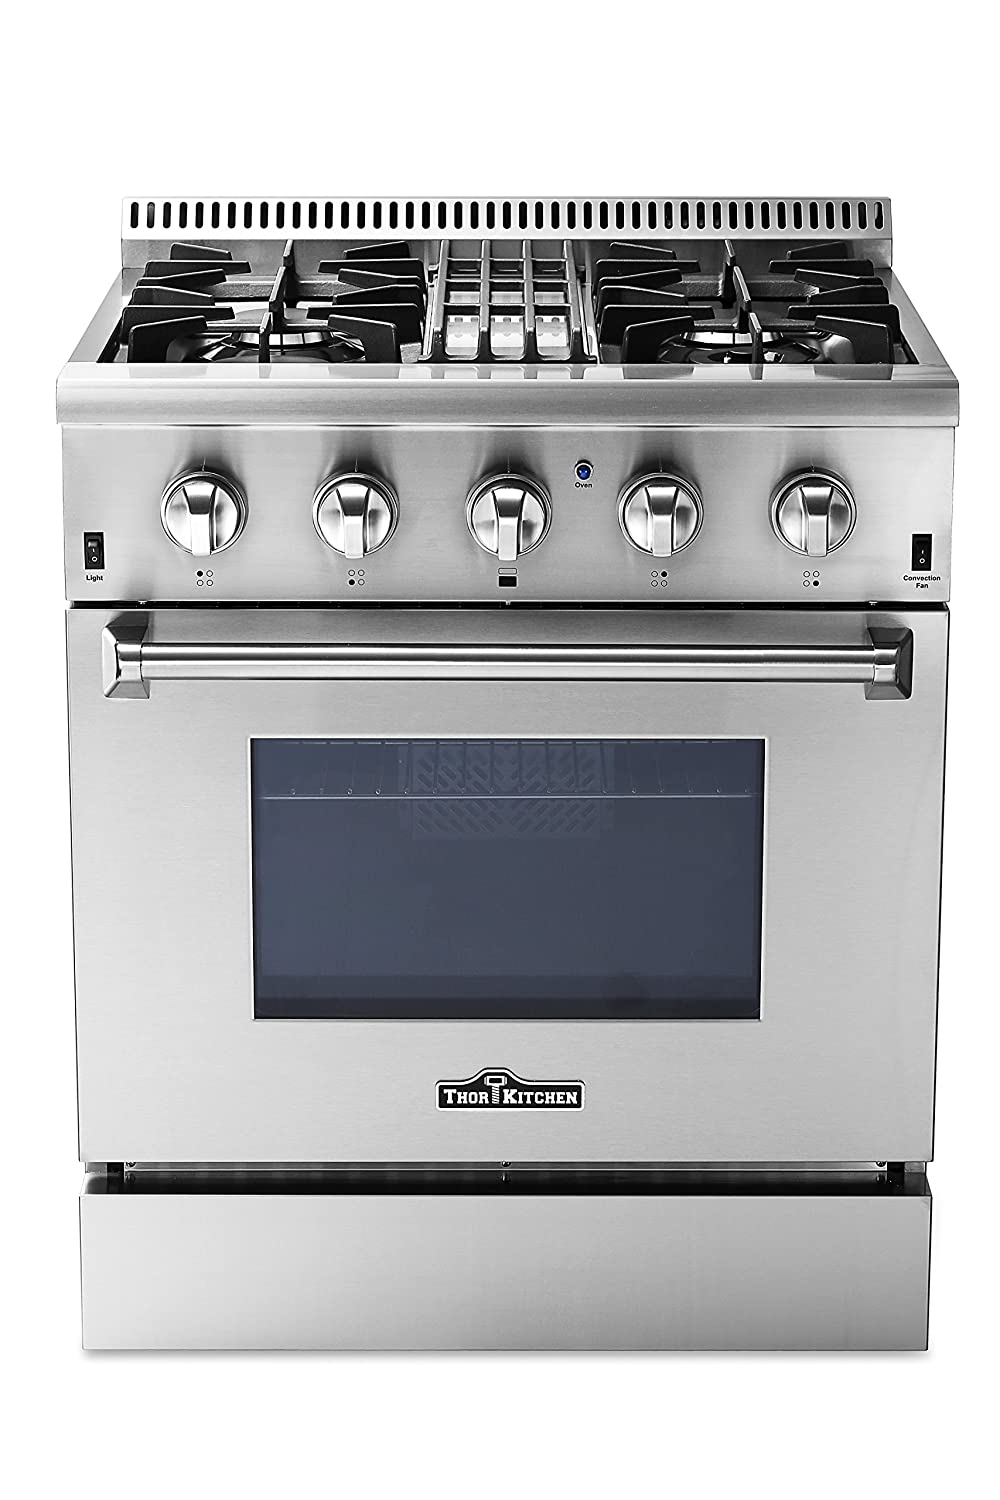 "Thorkitchen HRD3088U 30"" Freestanding Professional Style Dual Fuel Range with 4.2 cu. ft. Oven, 4 Burners, Convection Fan, Stainless Steel"